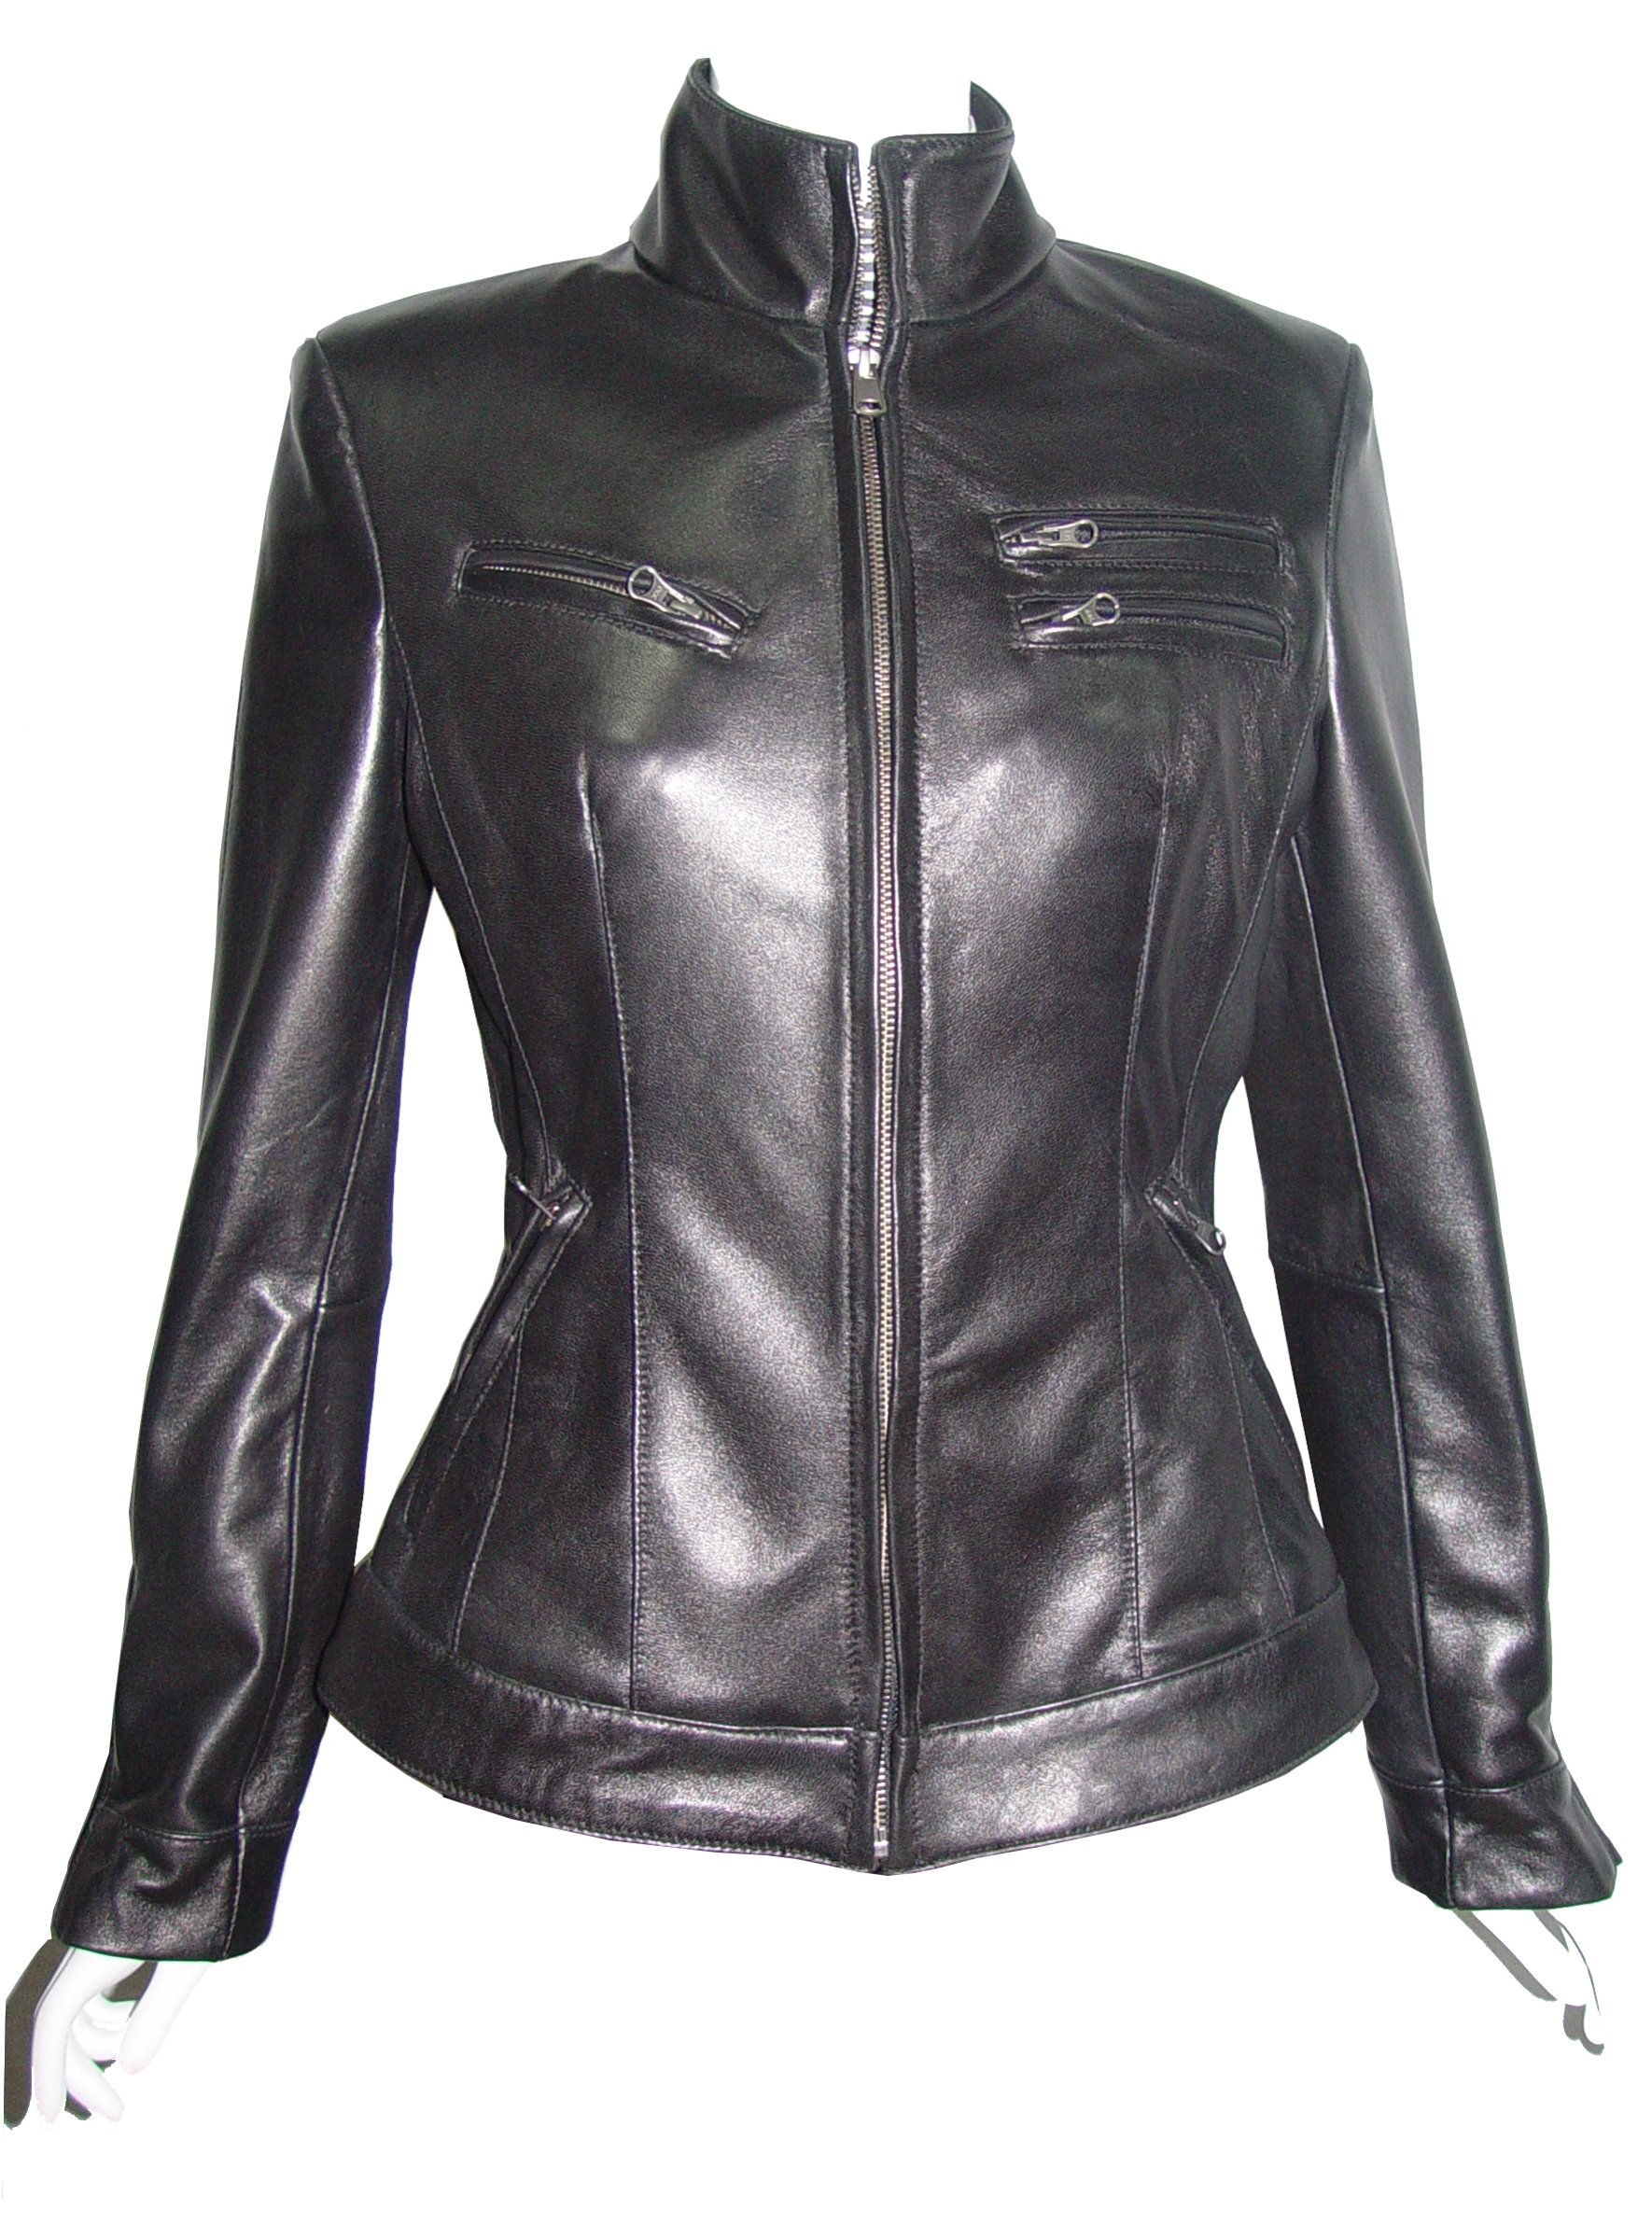 Nettailor PLUS & ALL SIZE Women Tall 4199 Soft Leather New Casual Biker Jacket